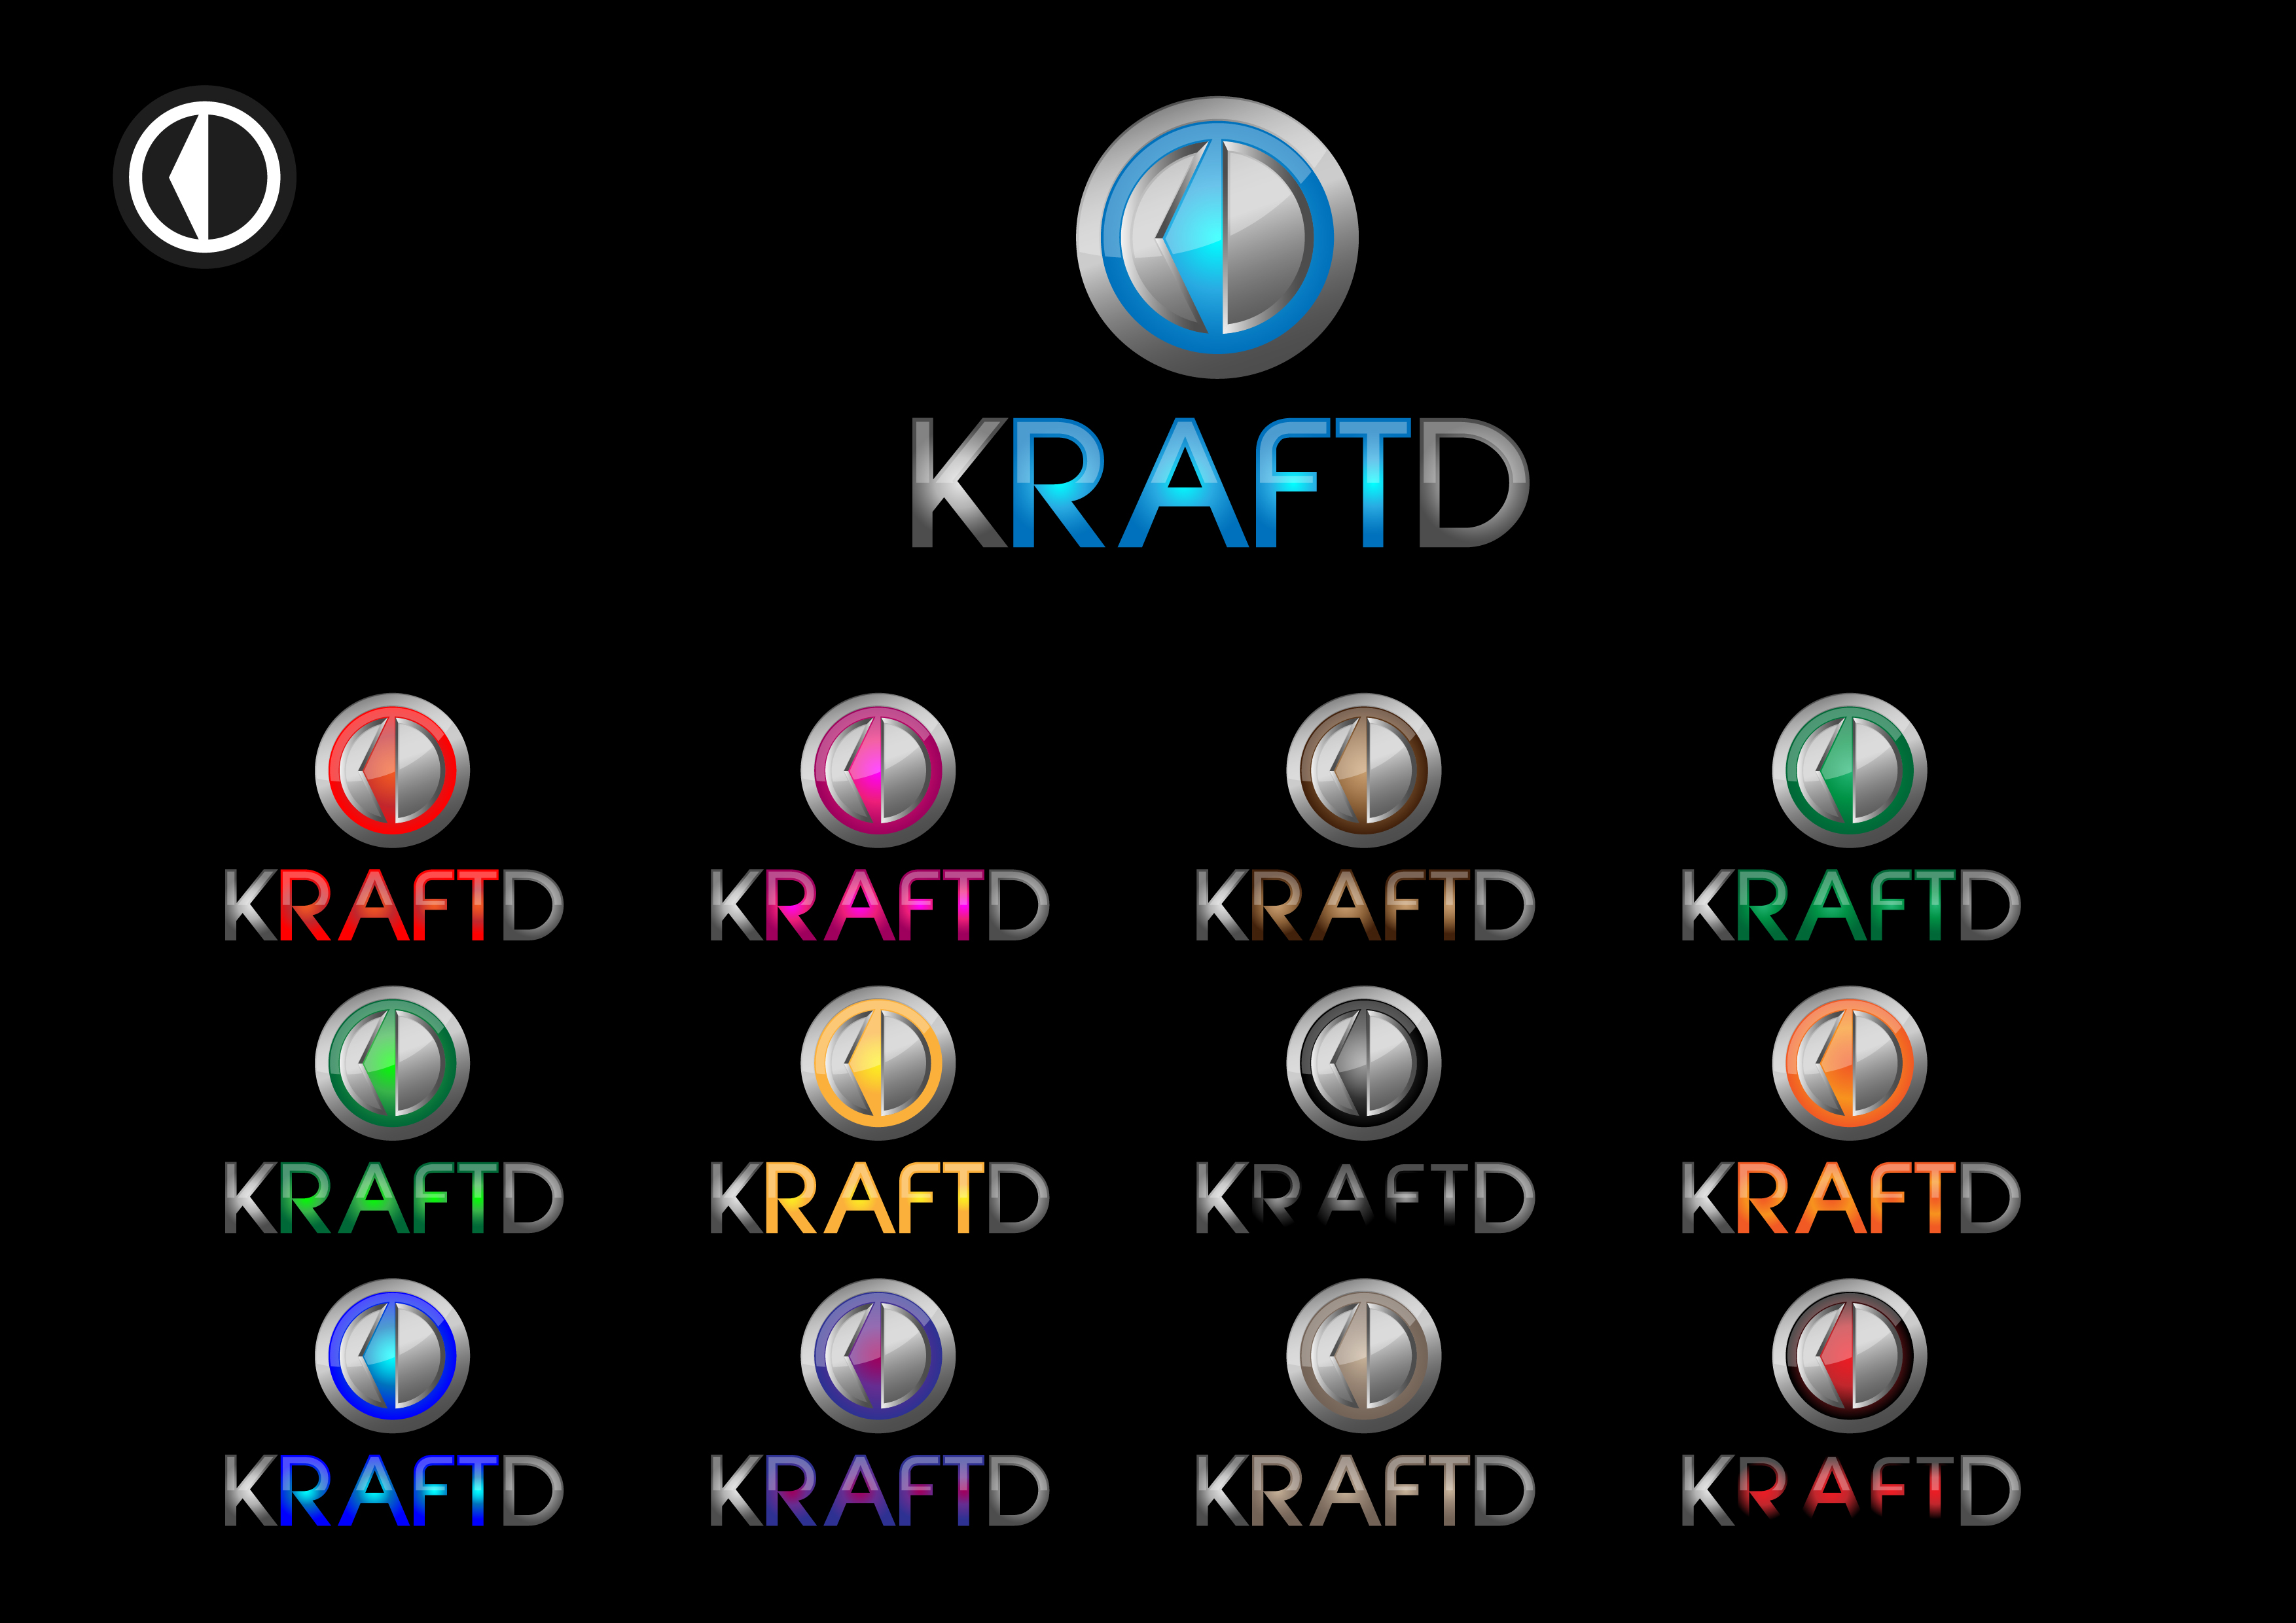 Logo Design by 3draw - Entry No. 452 in the Logo Design Contest Unique Logo Design Wanted for Kraft D Inc.